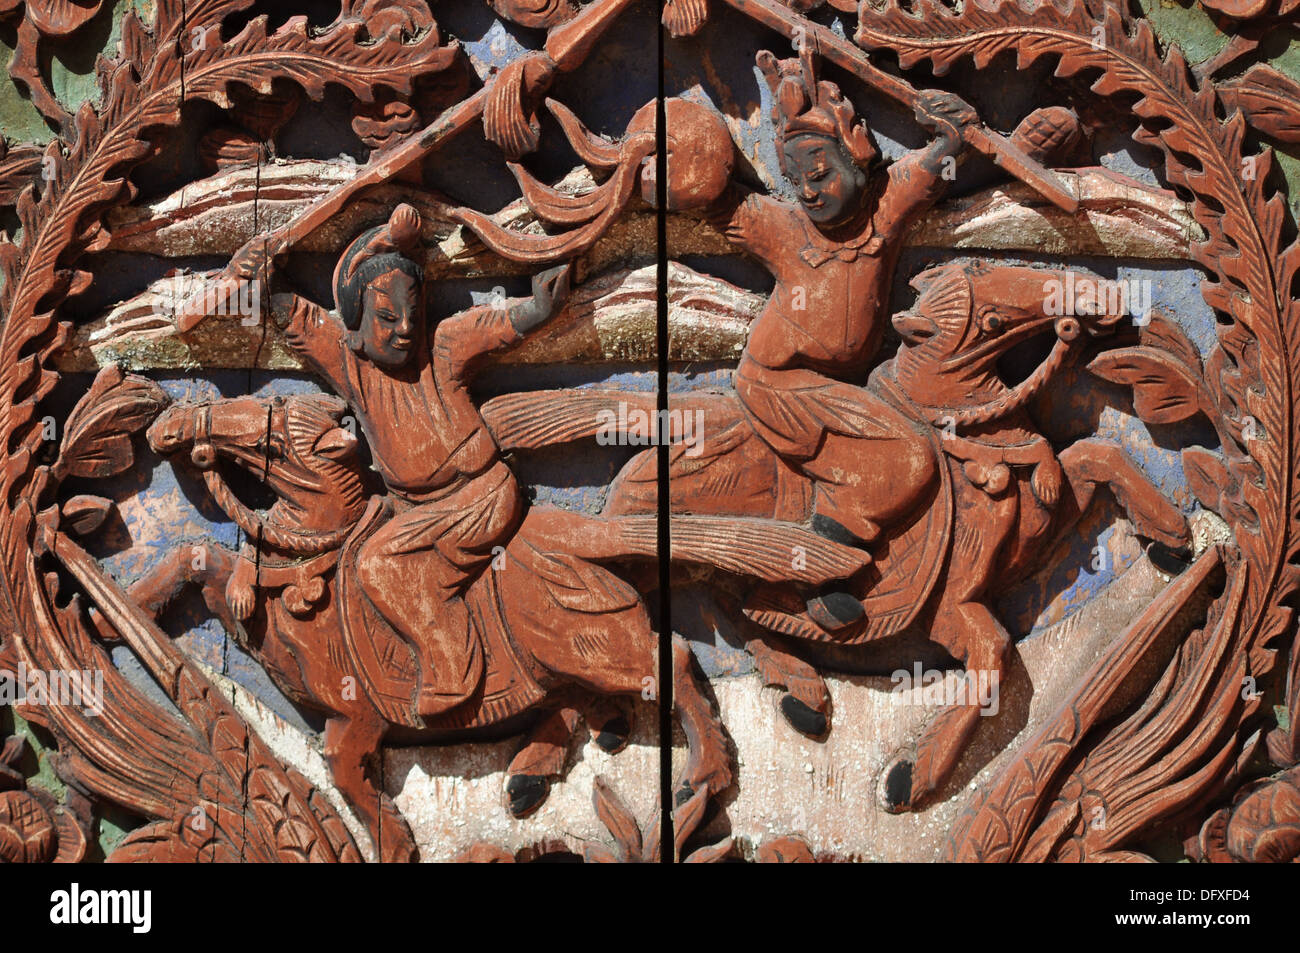 Exceptionnel Malacca (Malaysia): Carved Wooden Furniture In Chinatown   Stock Image